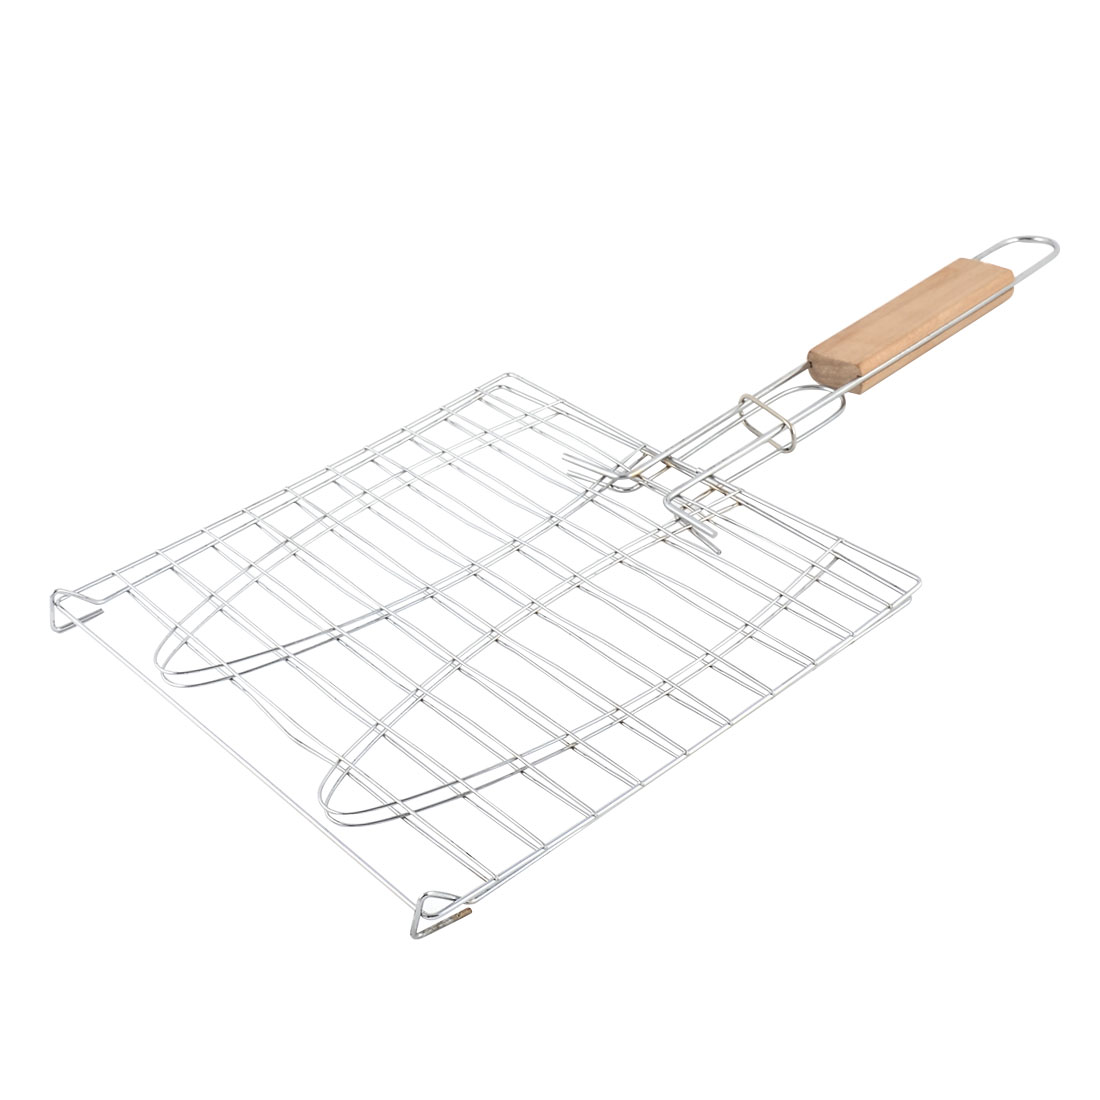 Wooden Handle Metal Mesh Fish Meat Barbecue Grill Grilling Folder Clip Clamp - image 2 of 2